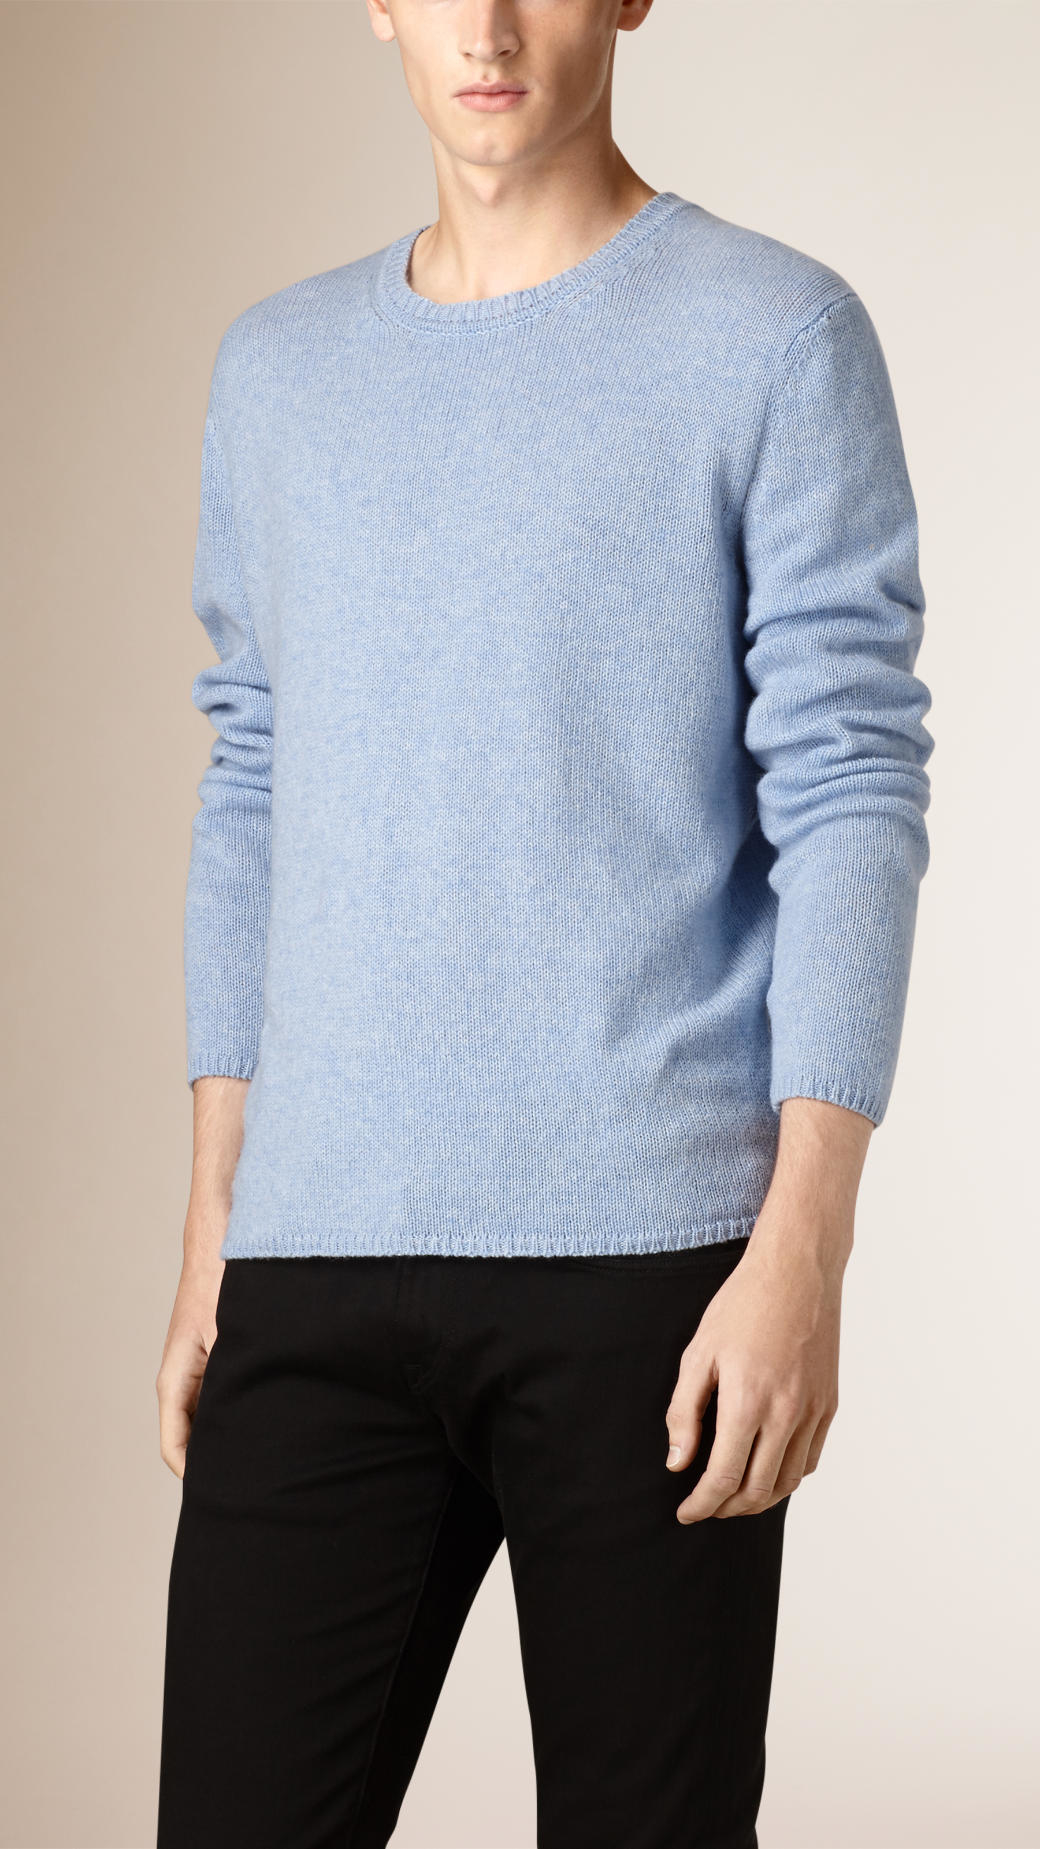 Burberry Lightweight Crew Neck Cashmere Sweater Pale Blue in Blue ...